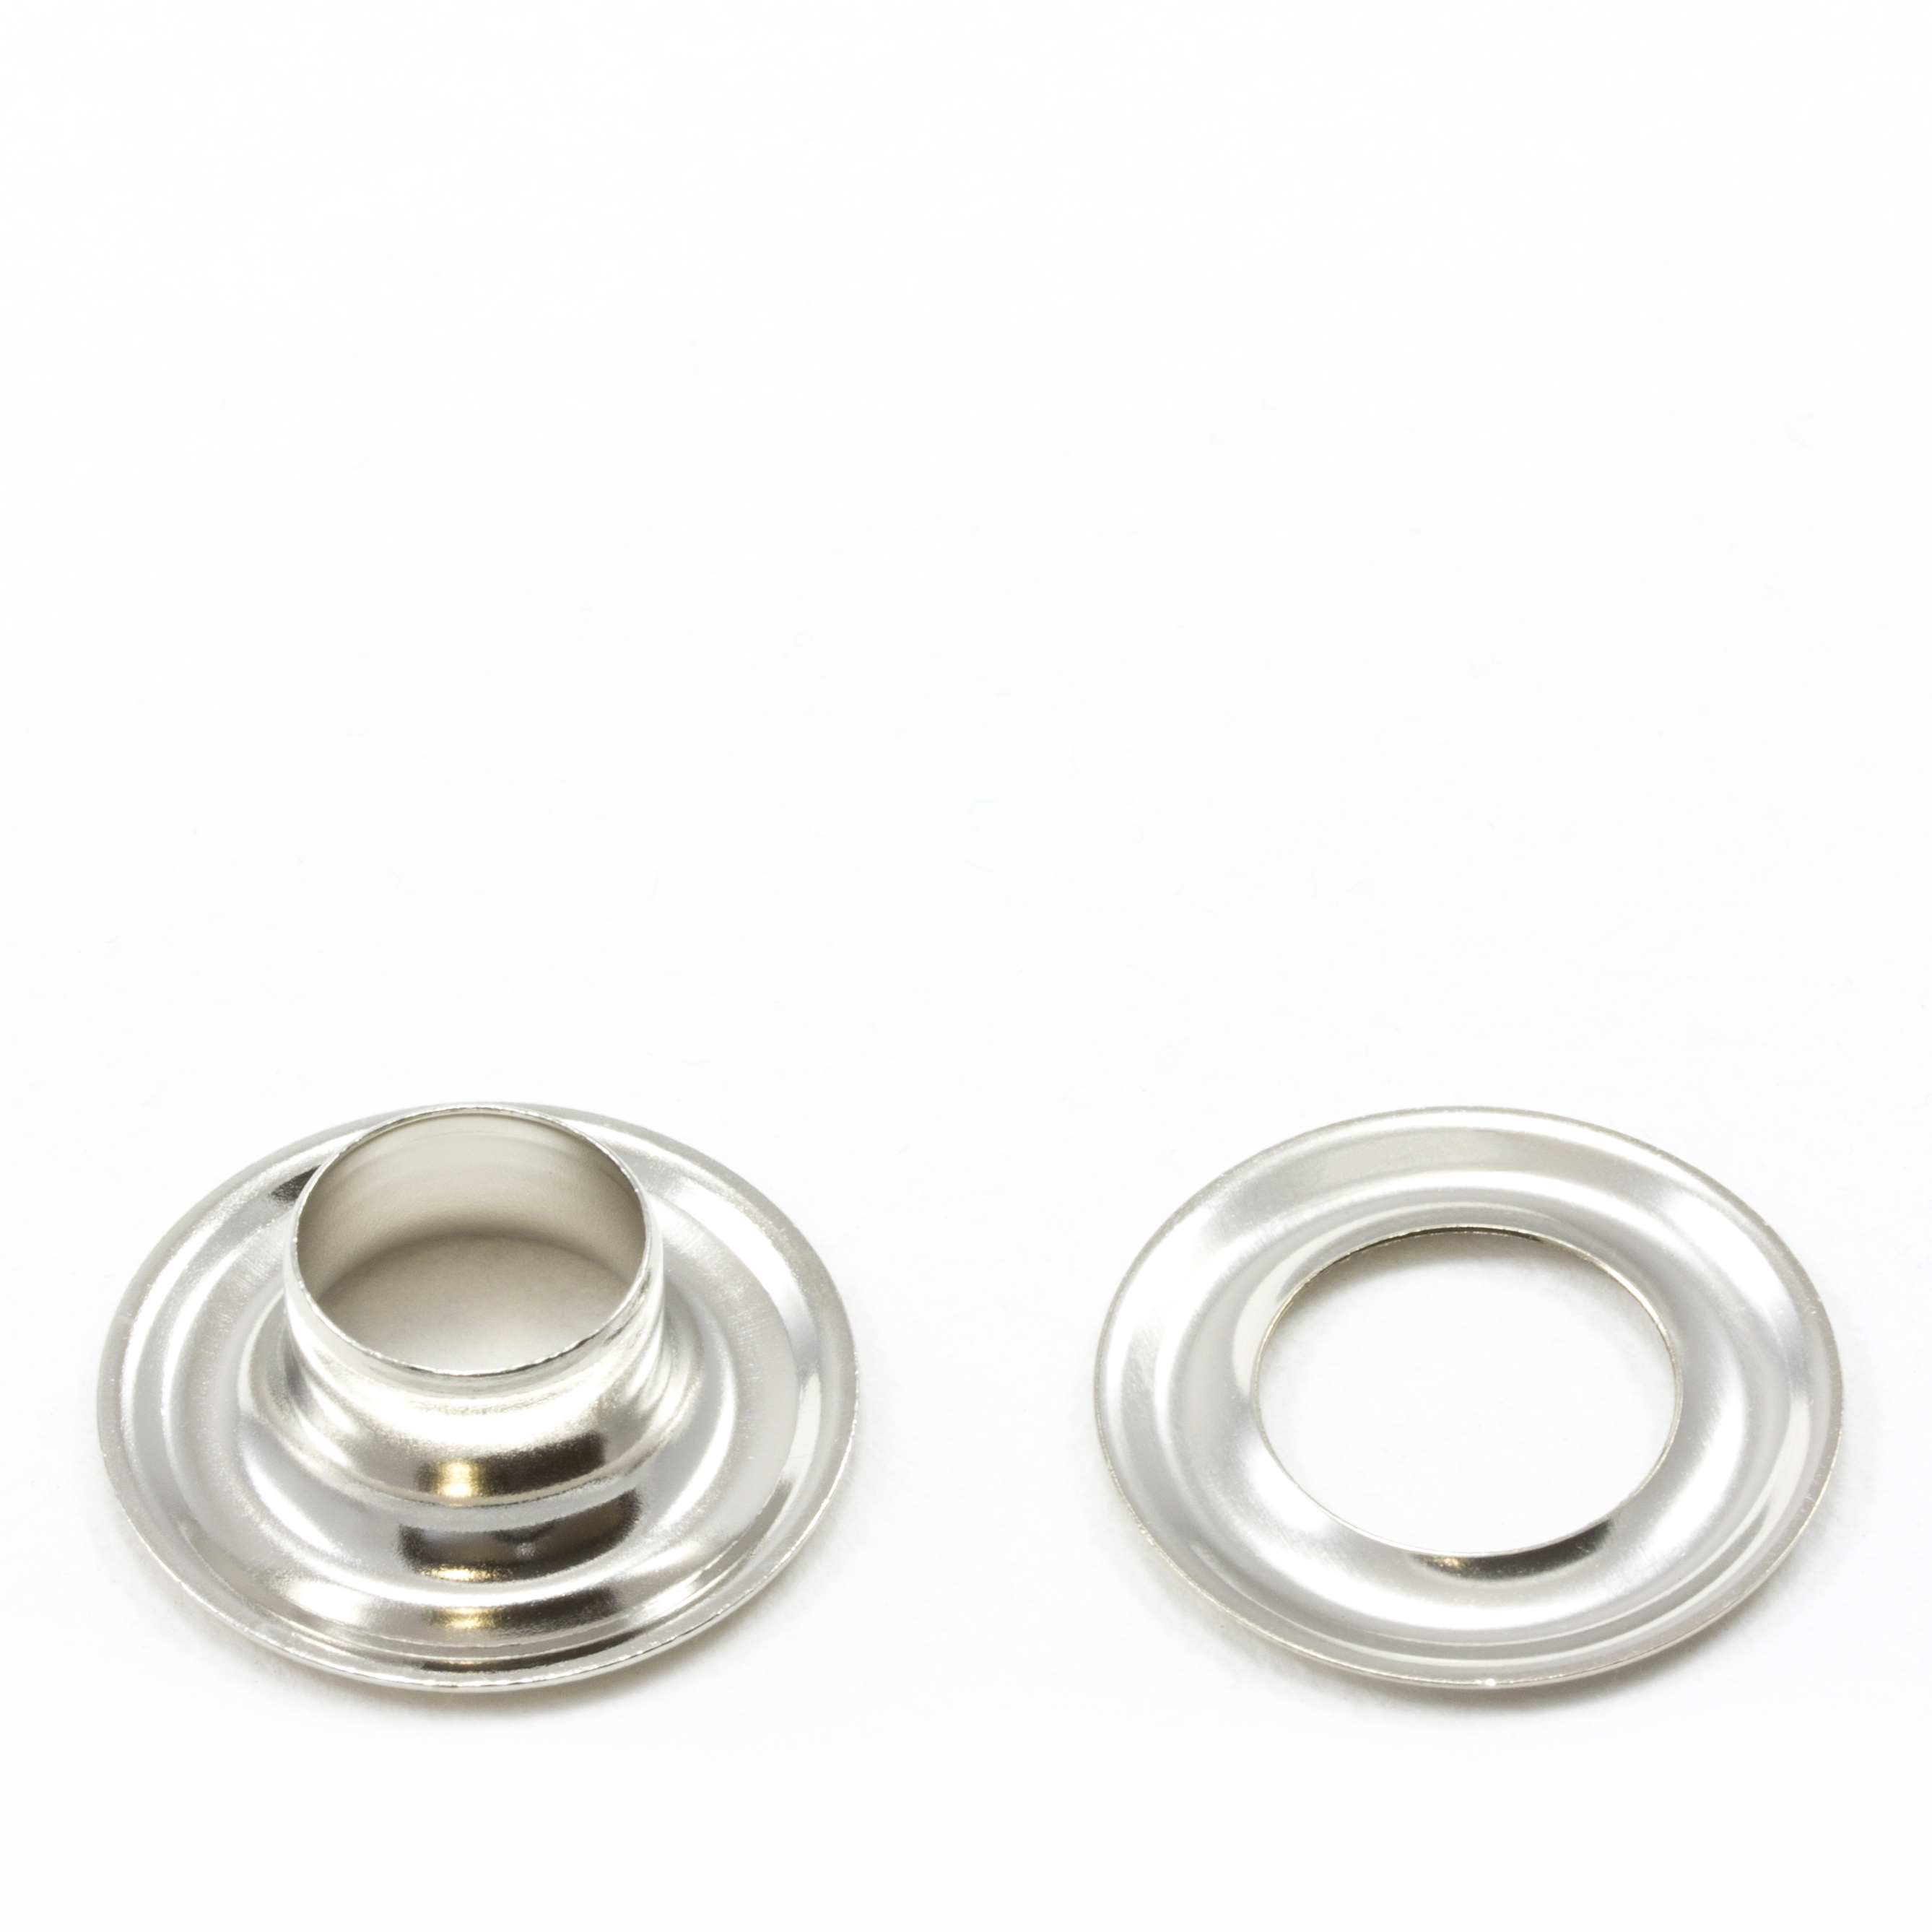 Grommet with Plain Washer #3 Brass Nickel Plated 7/16